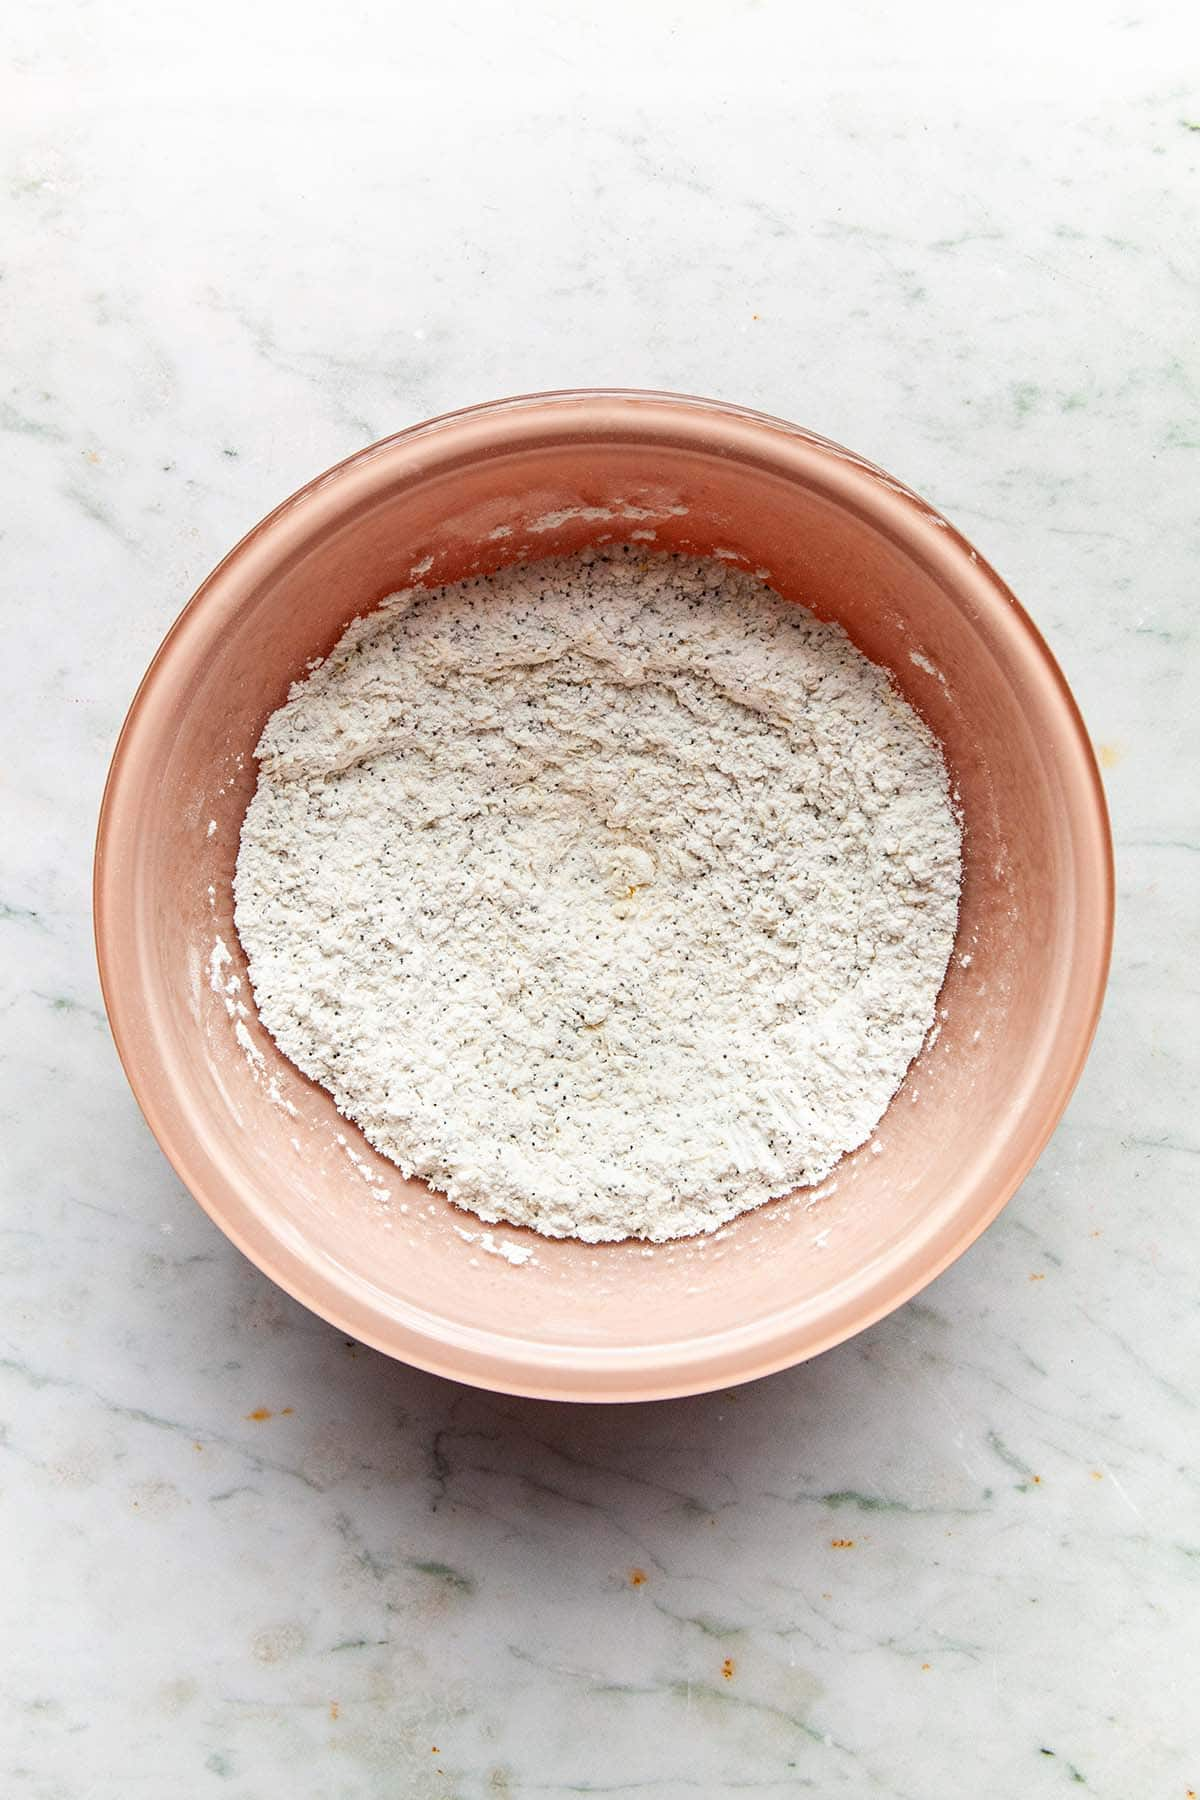 A bowl of flour mixed with poppy seeds.